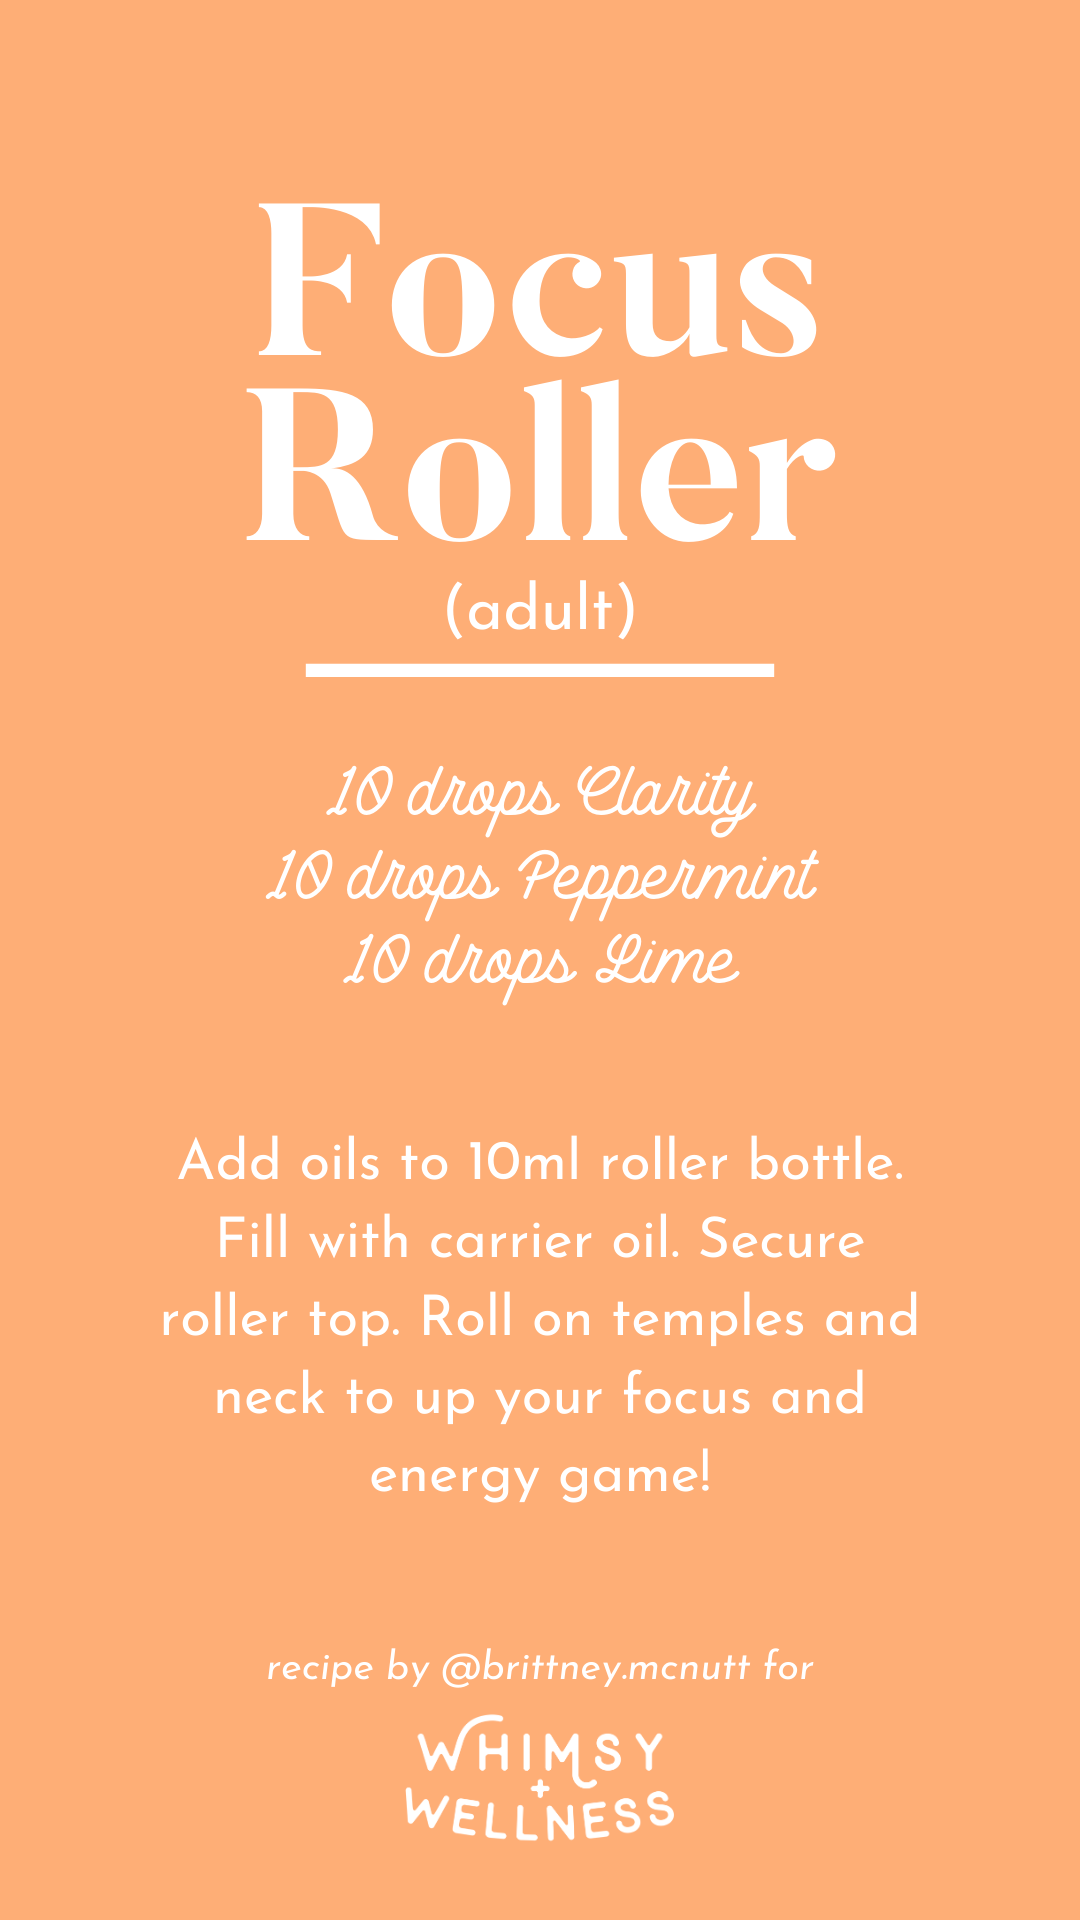 Focus roller (adult) recipe blend using Young Living essential oils